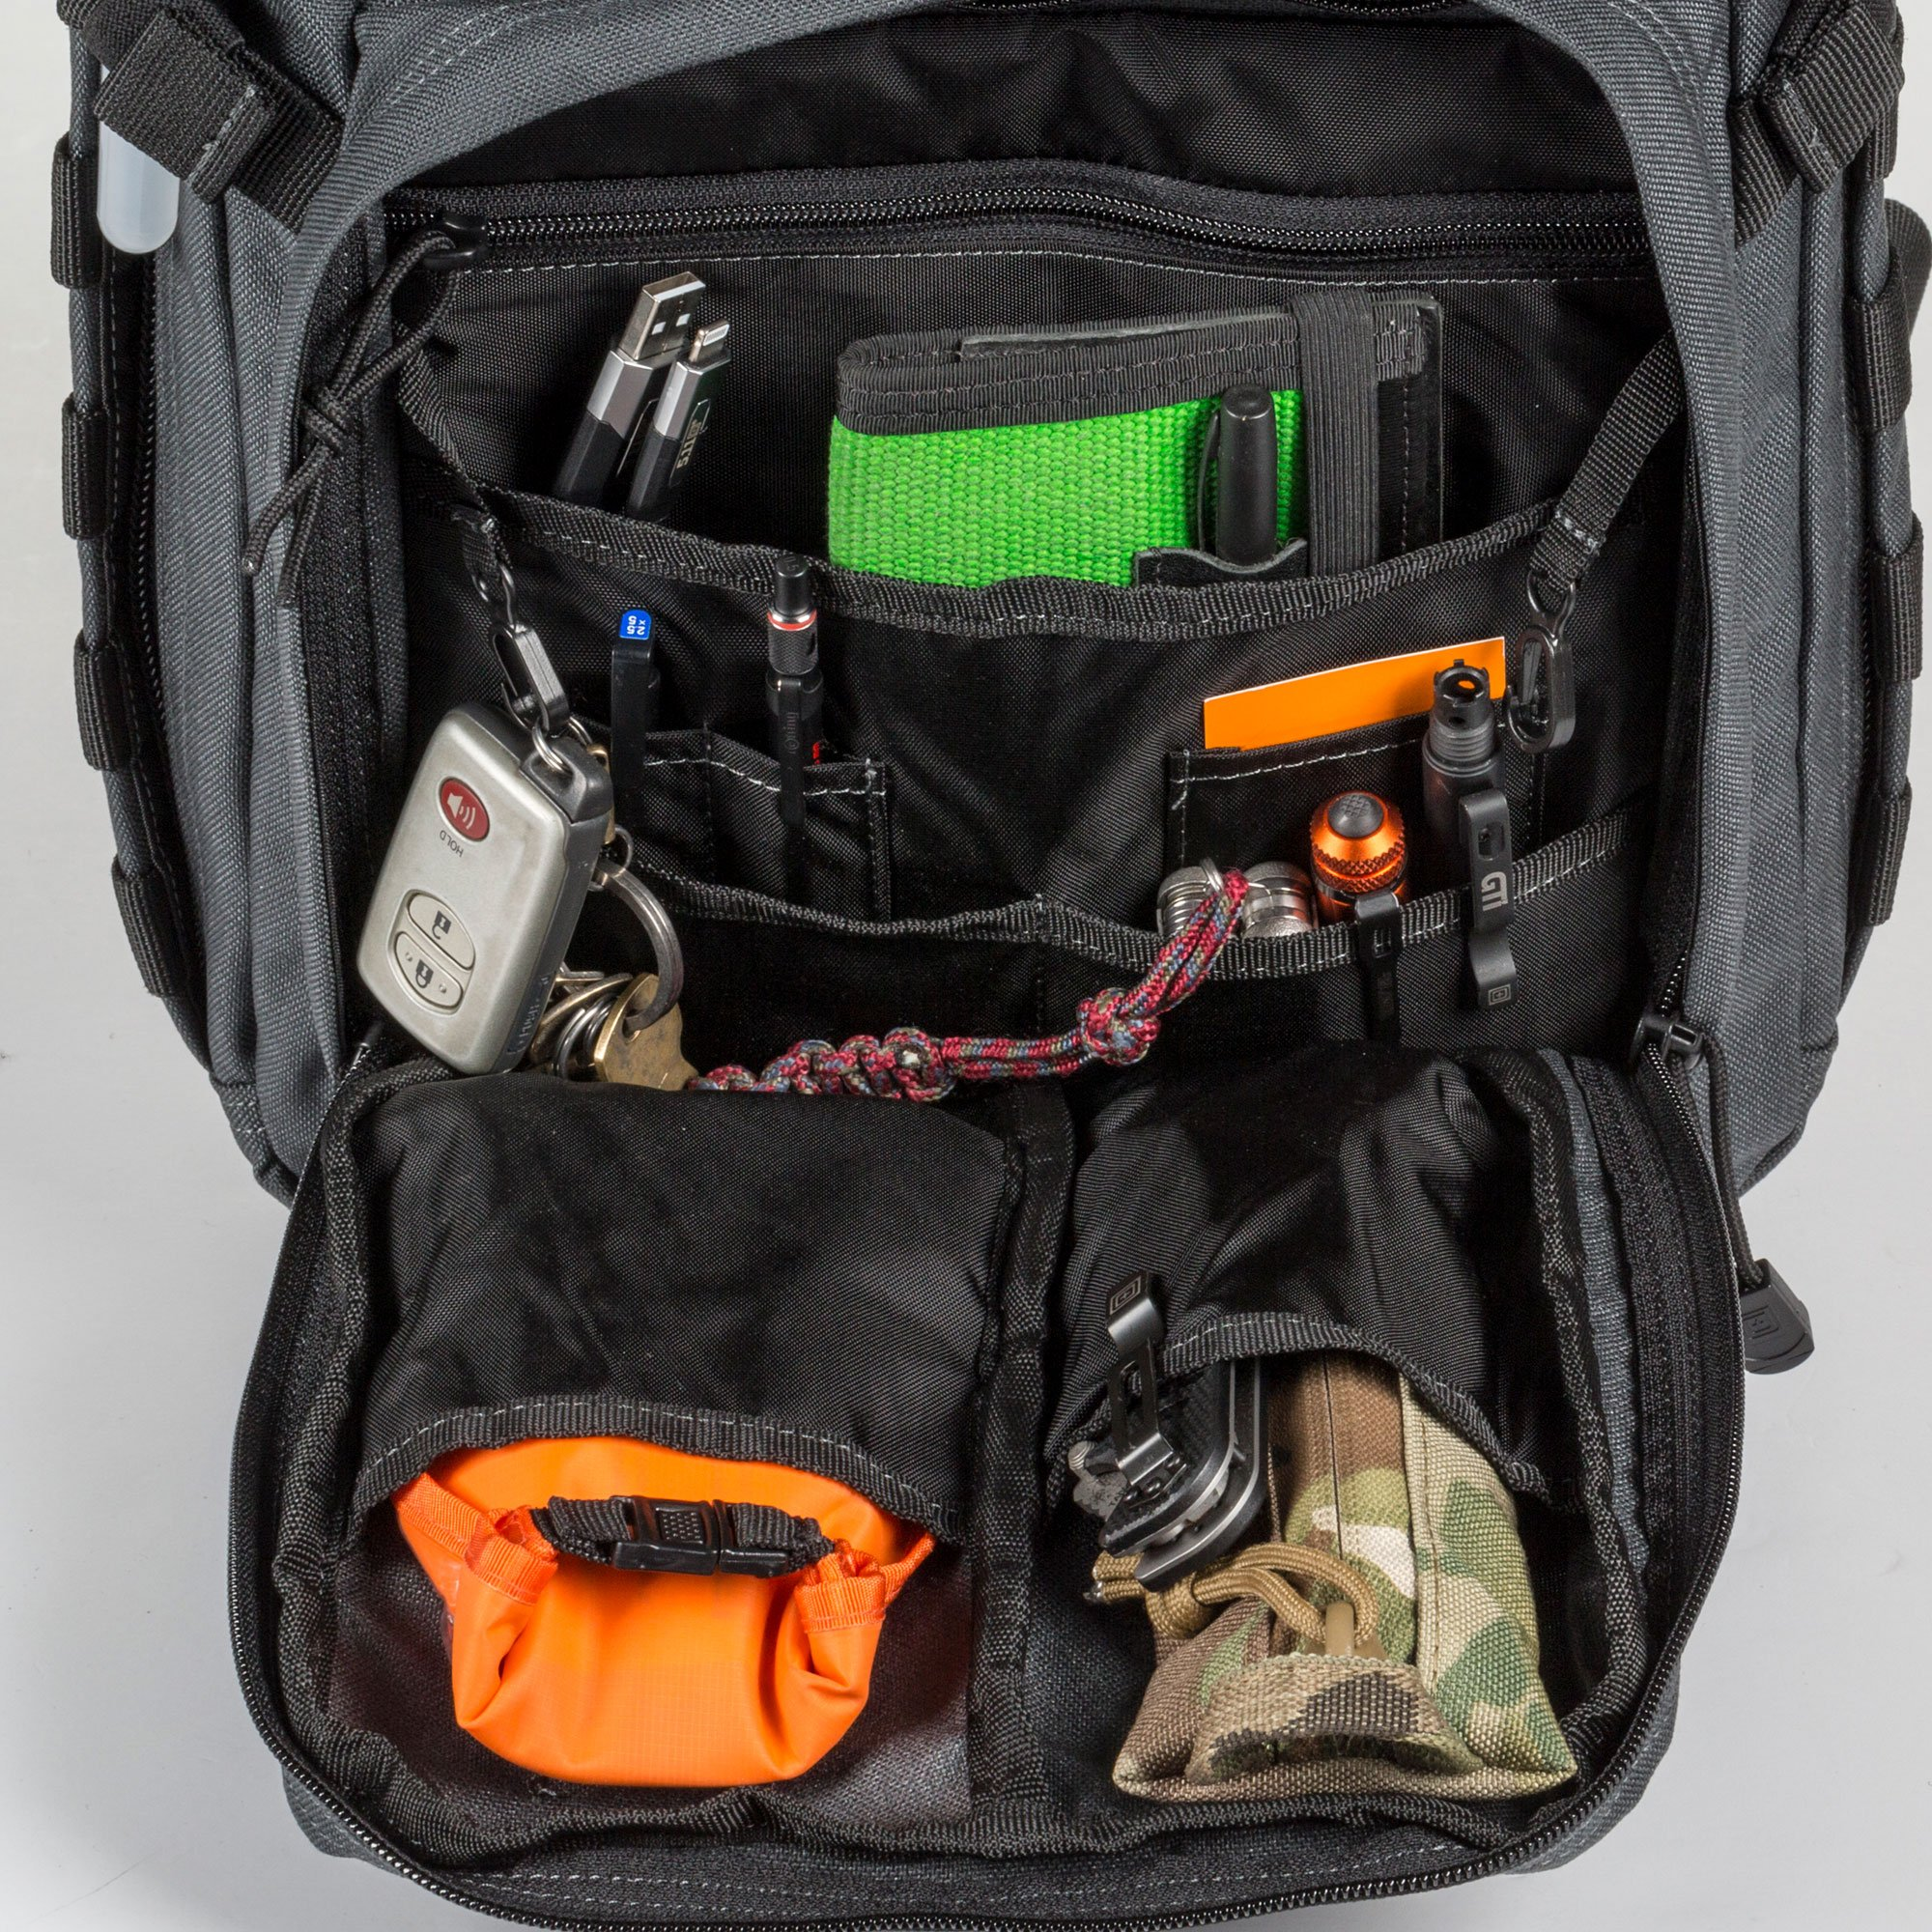 5.11 RUSH12 Tactical Military Assault Molle Backpack, Bug Out Rucksack Bag, Small, Style 56892, Black by 5.11 (Image #5)